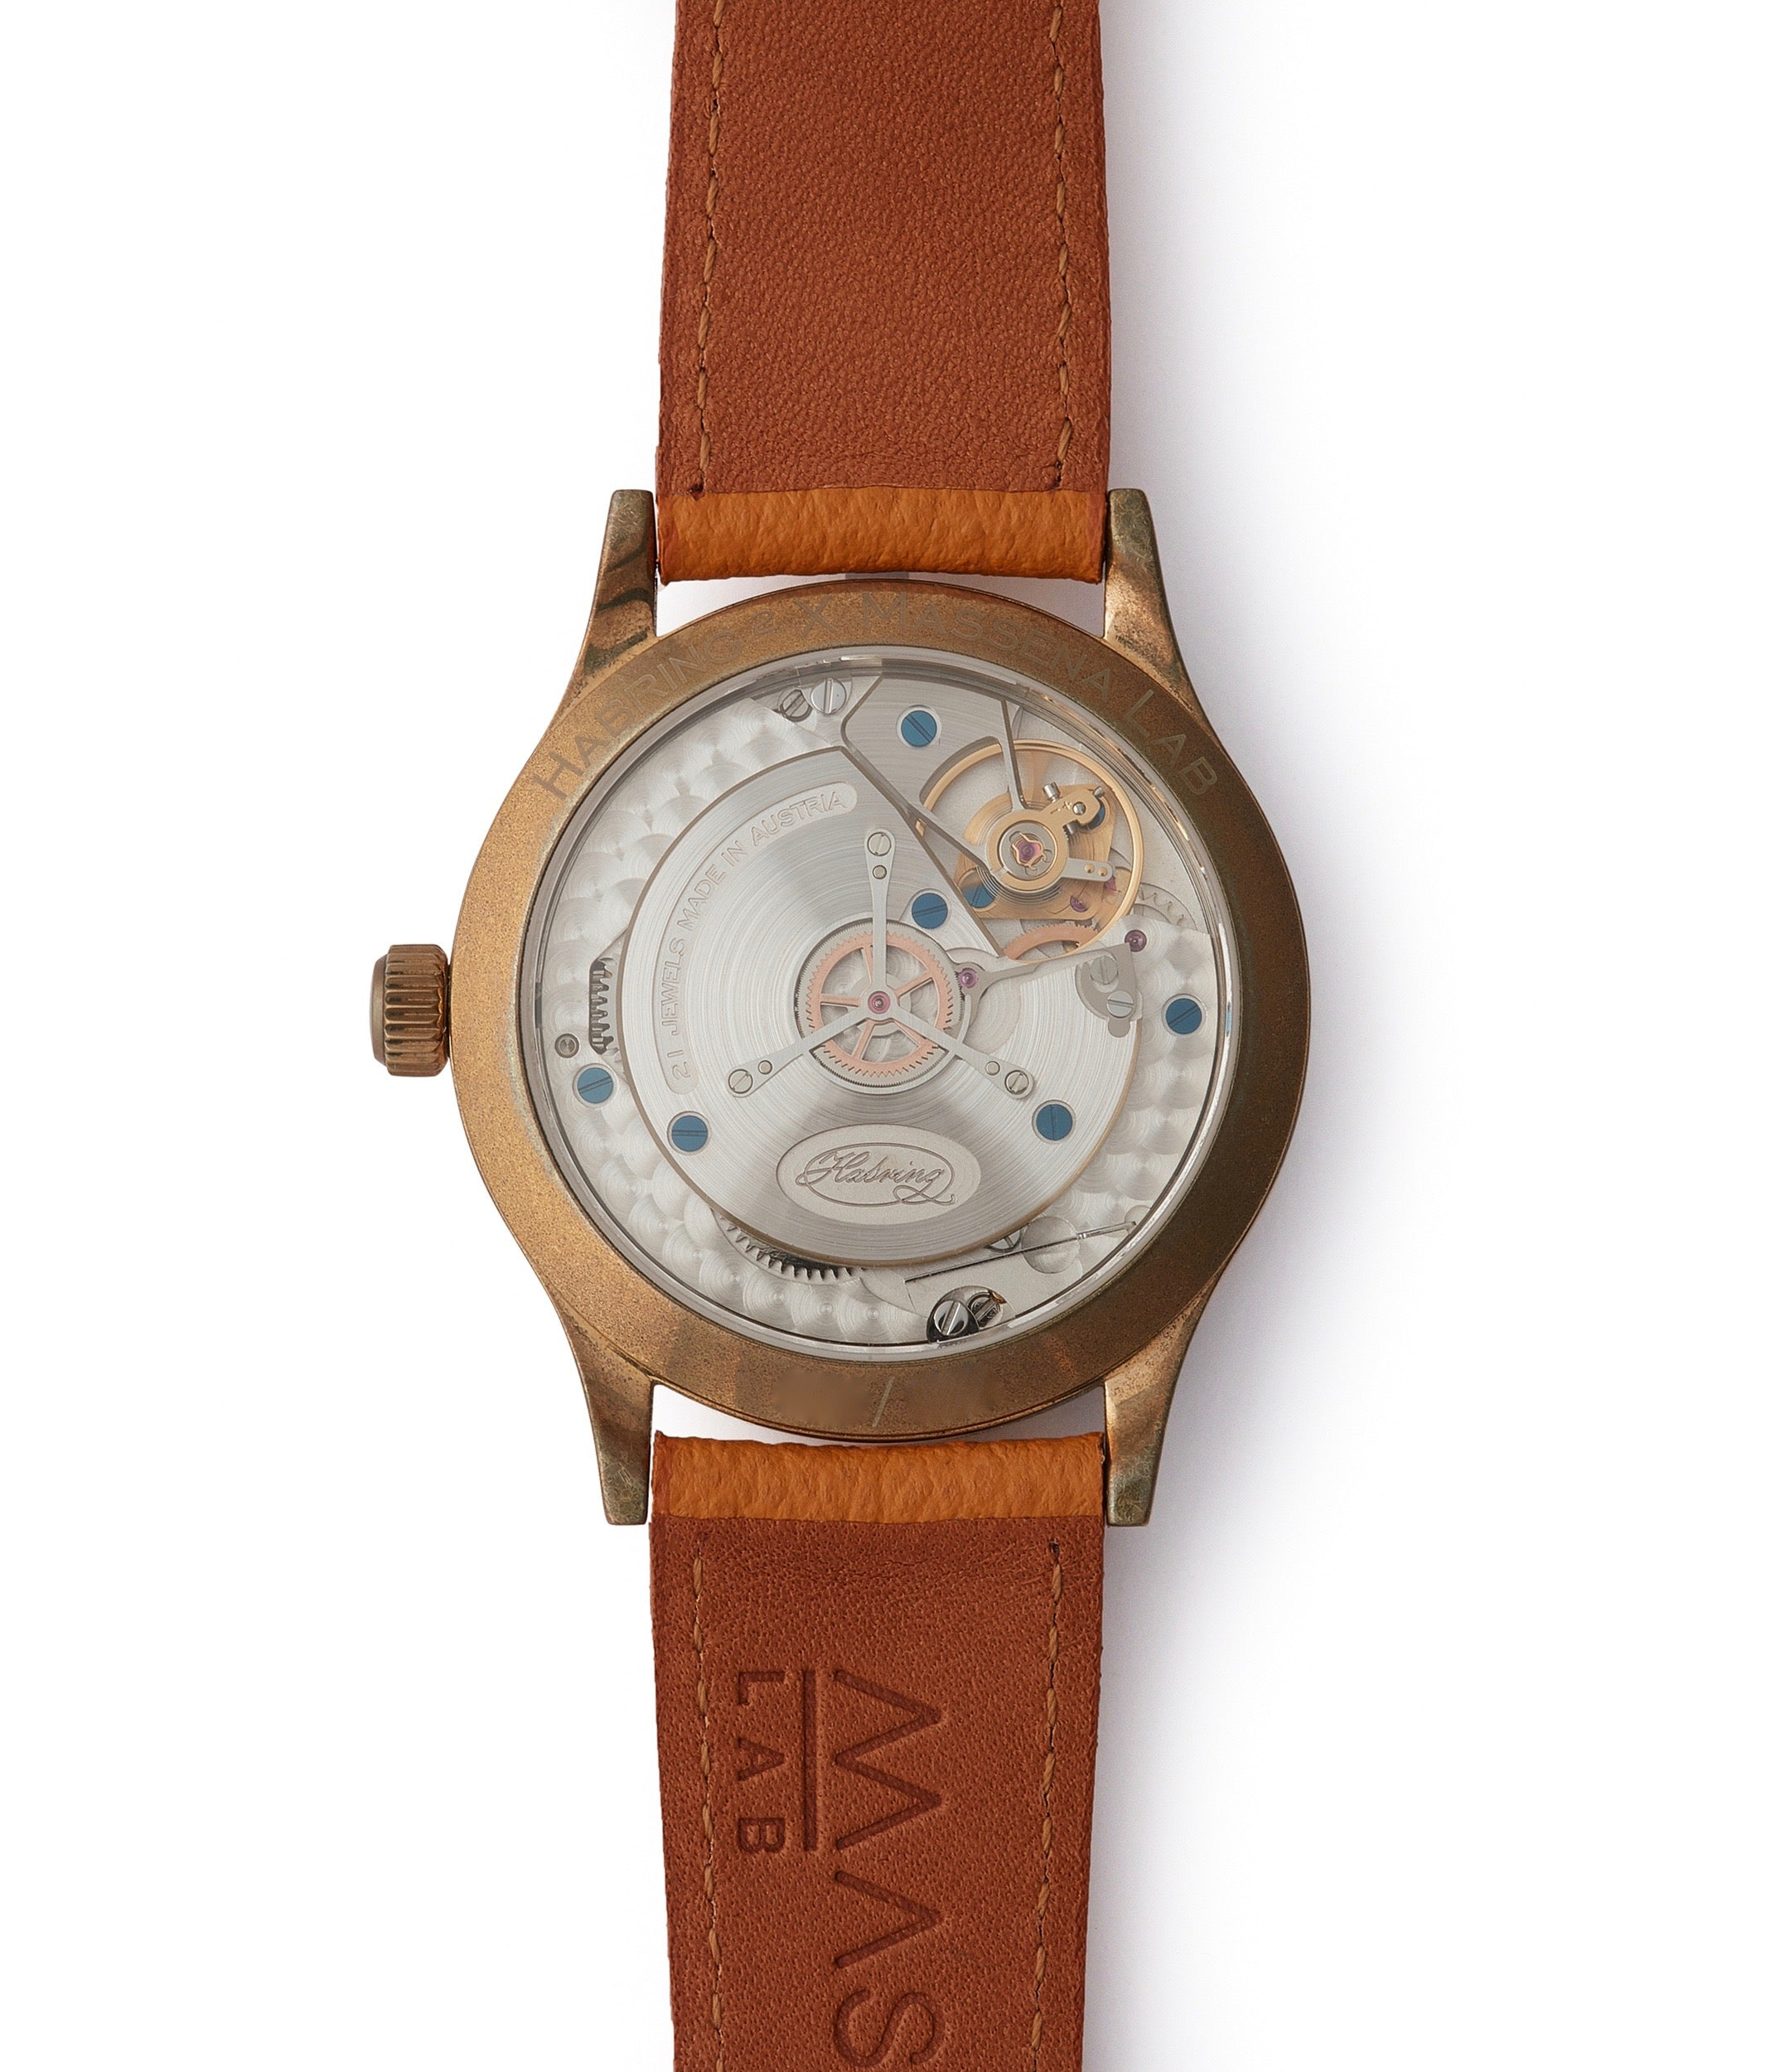 in-house movement Habring2 independent watchmaker Erwin LAB 01 Massena LAB Limited Edition bronze dress watch for sale online at A Collected Man London UK rare watches